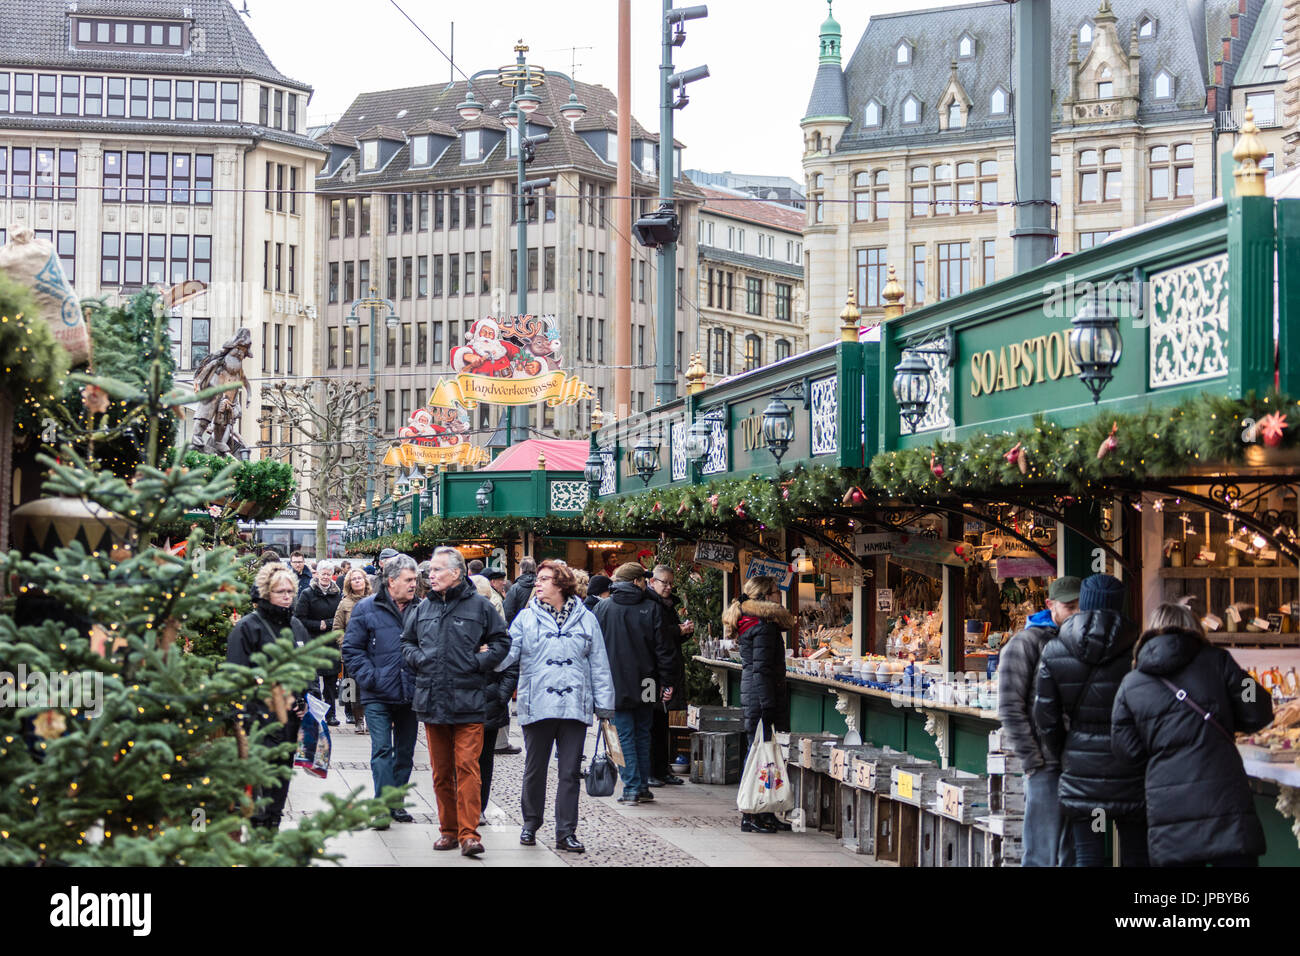 Christmas market and decorations surrounded by neoclassic architecture Rathaus square Altstadt quarter Hamburg Germany Europe - Stock Image